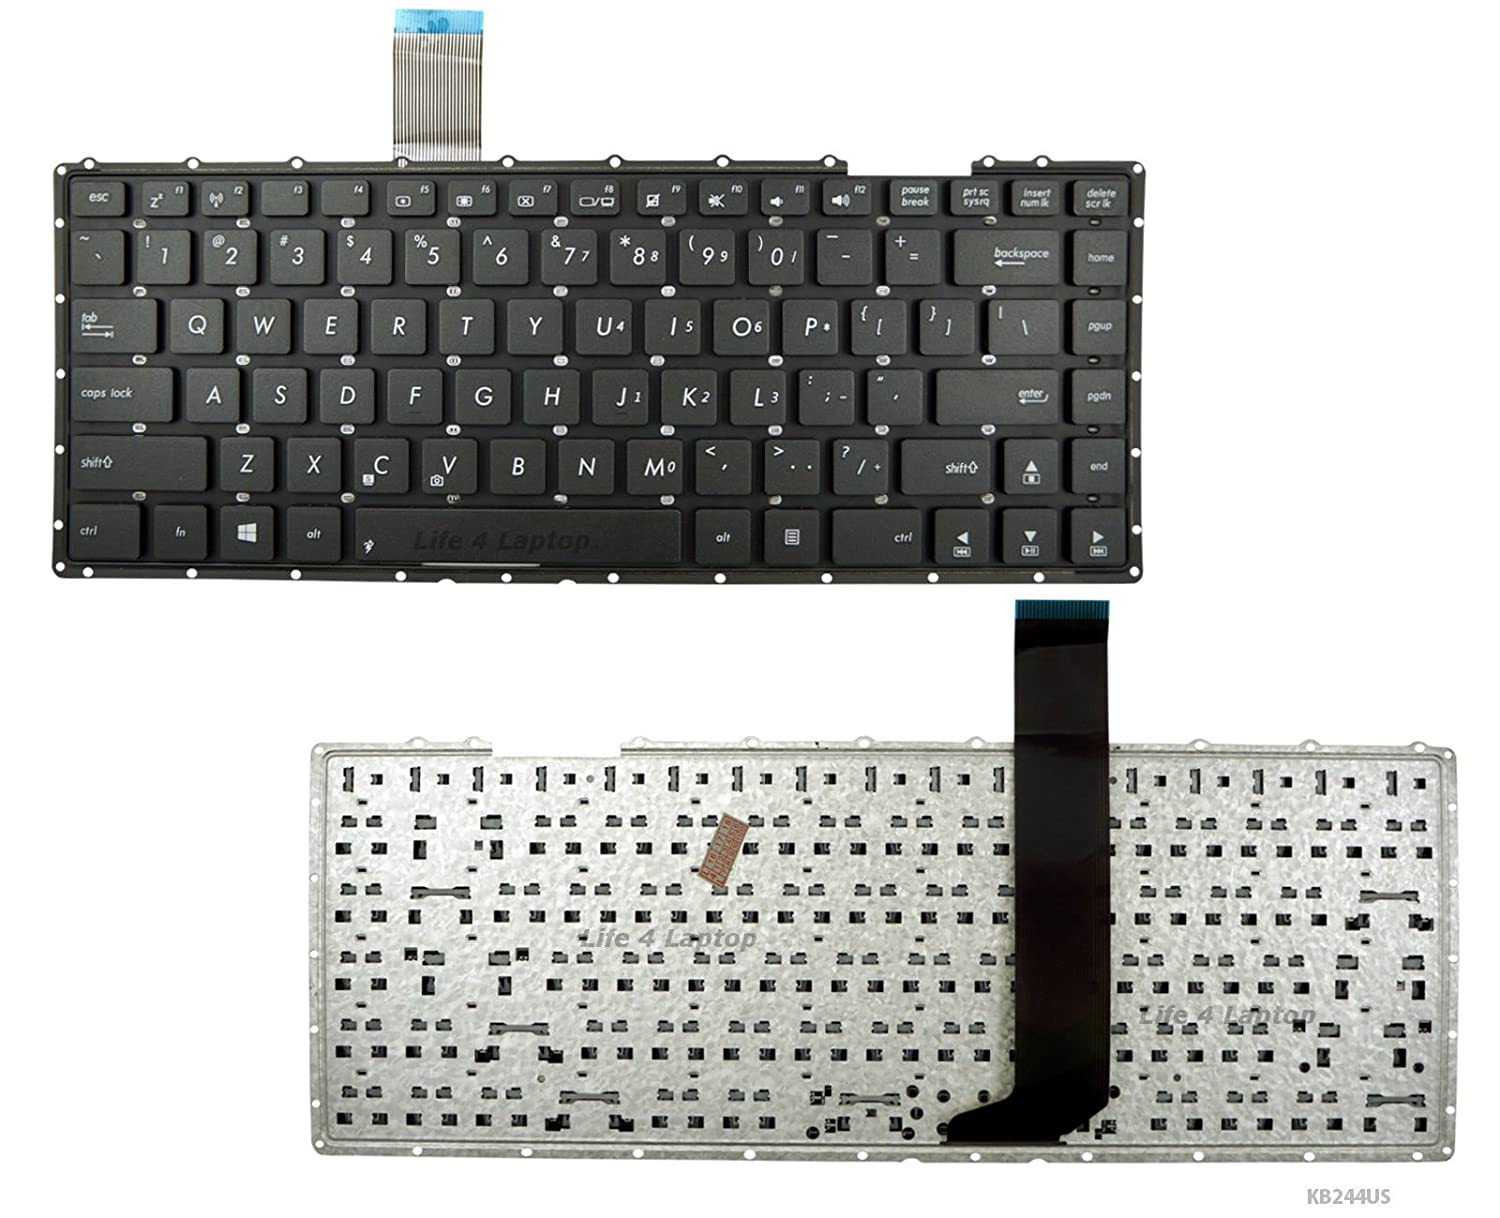 ASUS K50IE NOTEBOOK KEYBOARD DEVICE FILTER DRIVER FOR WINDOWS 10